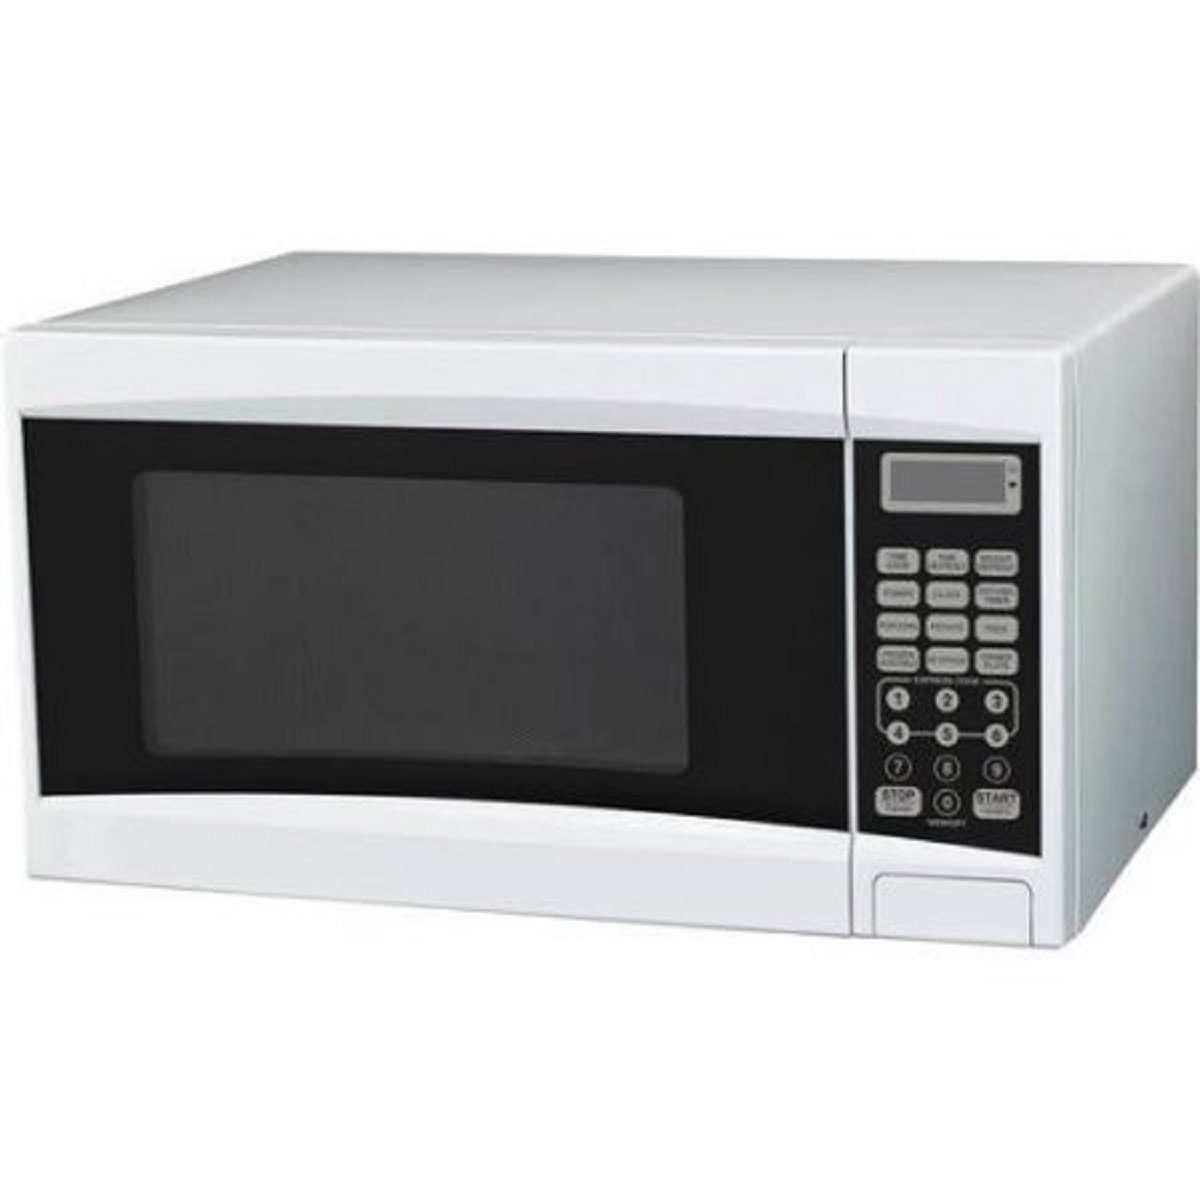 0.7-Cubic Foot White Touch Pad Control Convenience Cooking Controls Child Lock Cooking Complete Reminder Microwave Oven